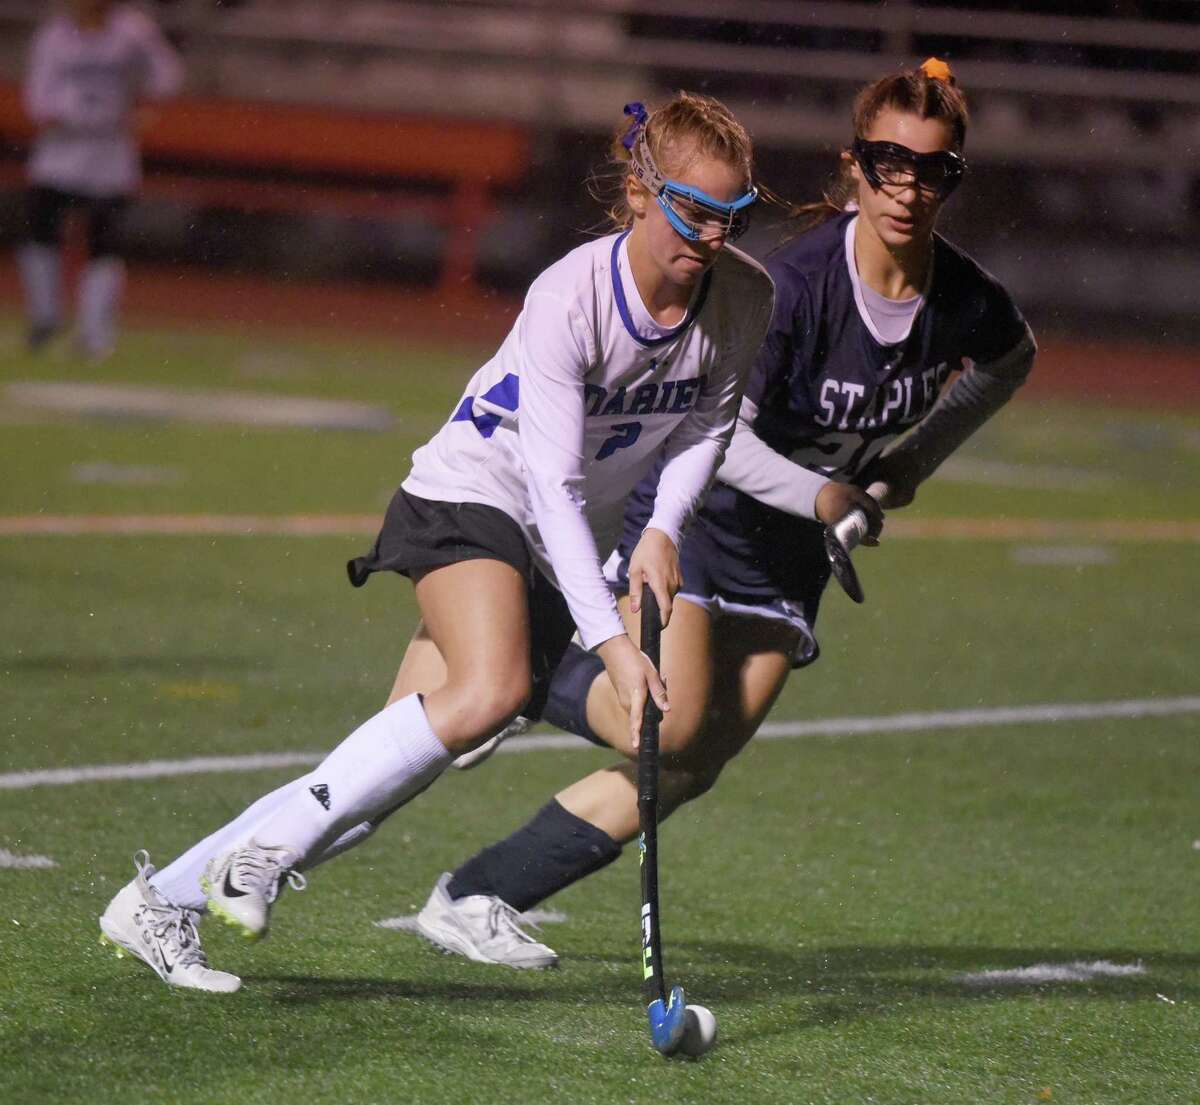 Darien's Molly Hellman controls the ball as Staples' Jessica Leon defends during the FCIAC final on Nov. 7.